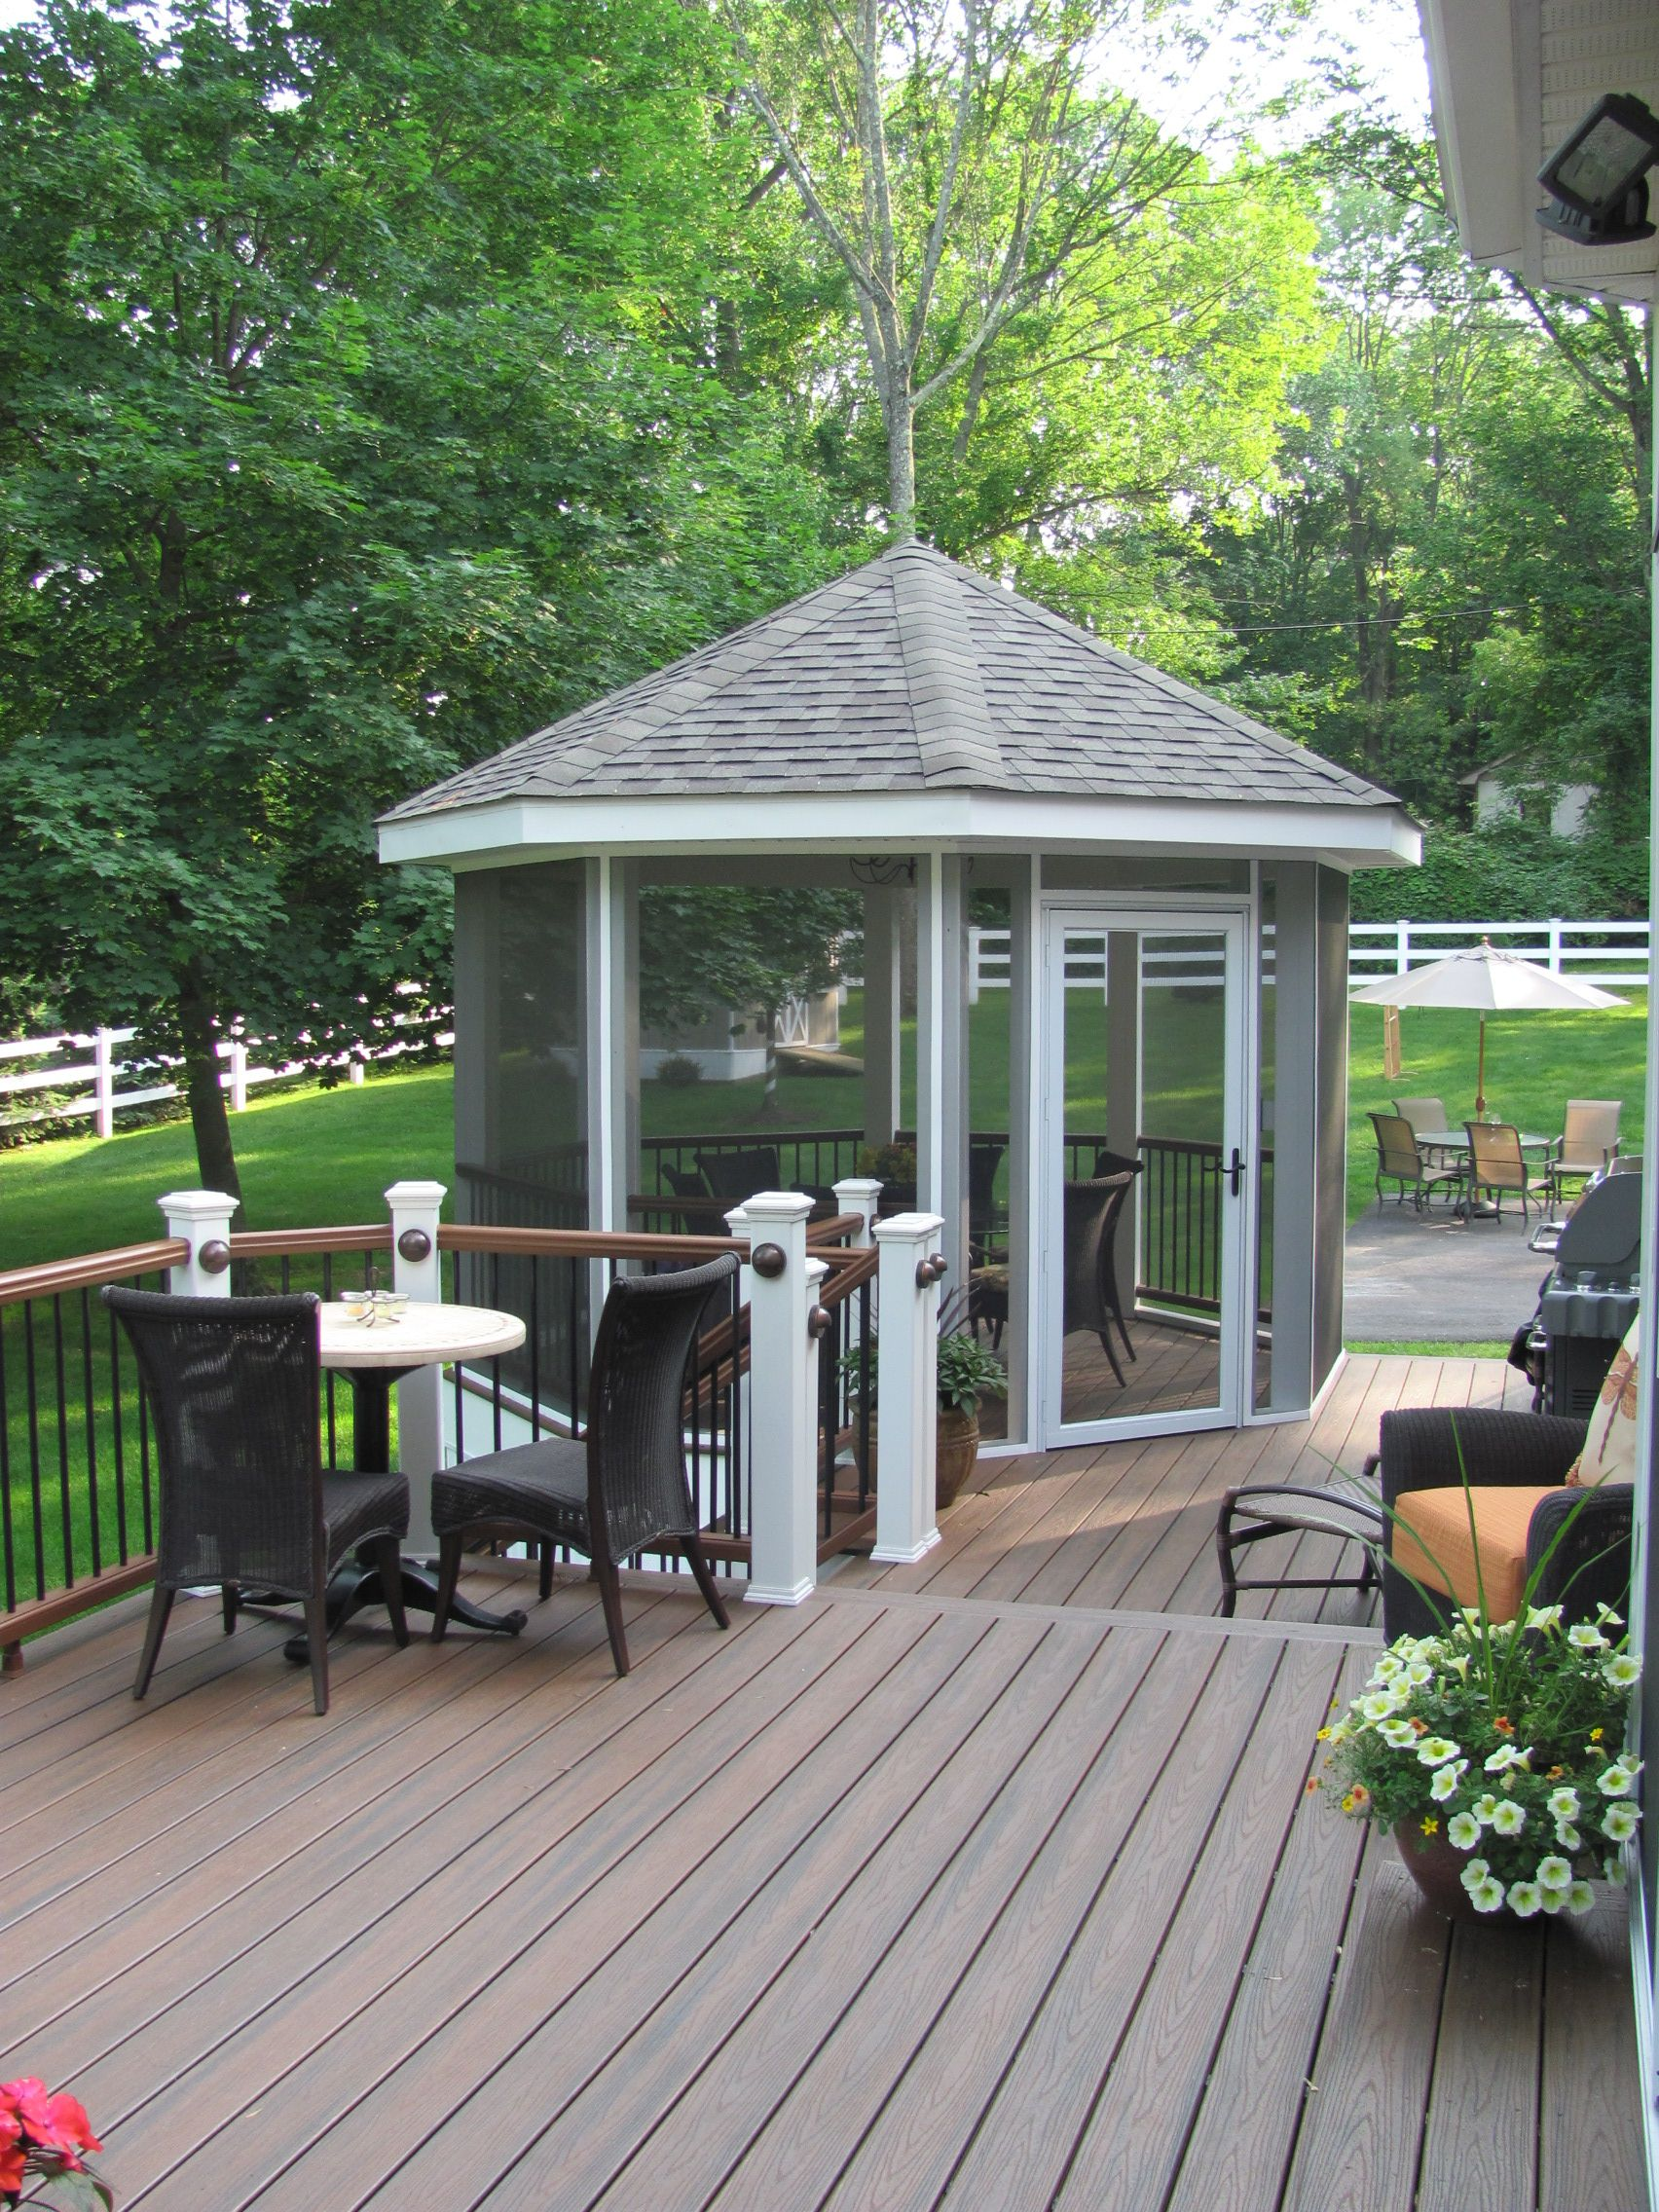 Multi tiered deck with screened in gazebo provides open for Enclosed deck plans